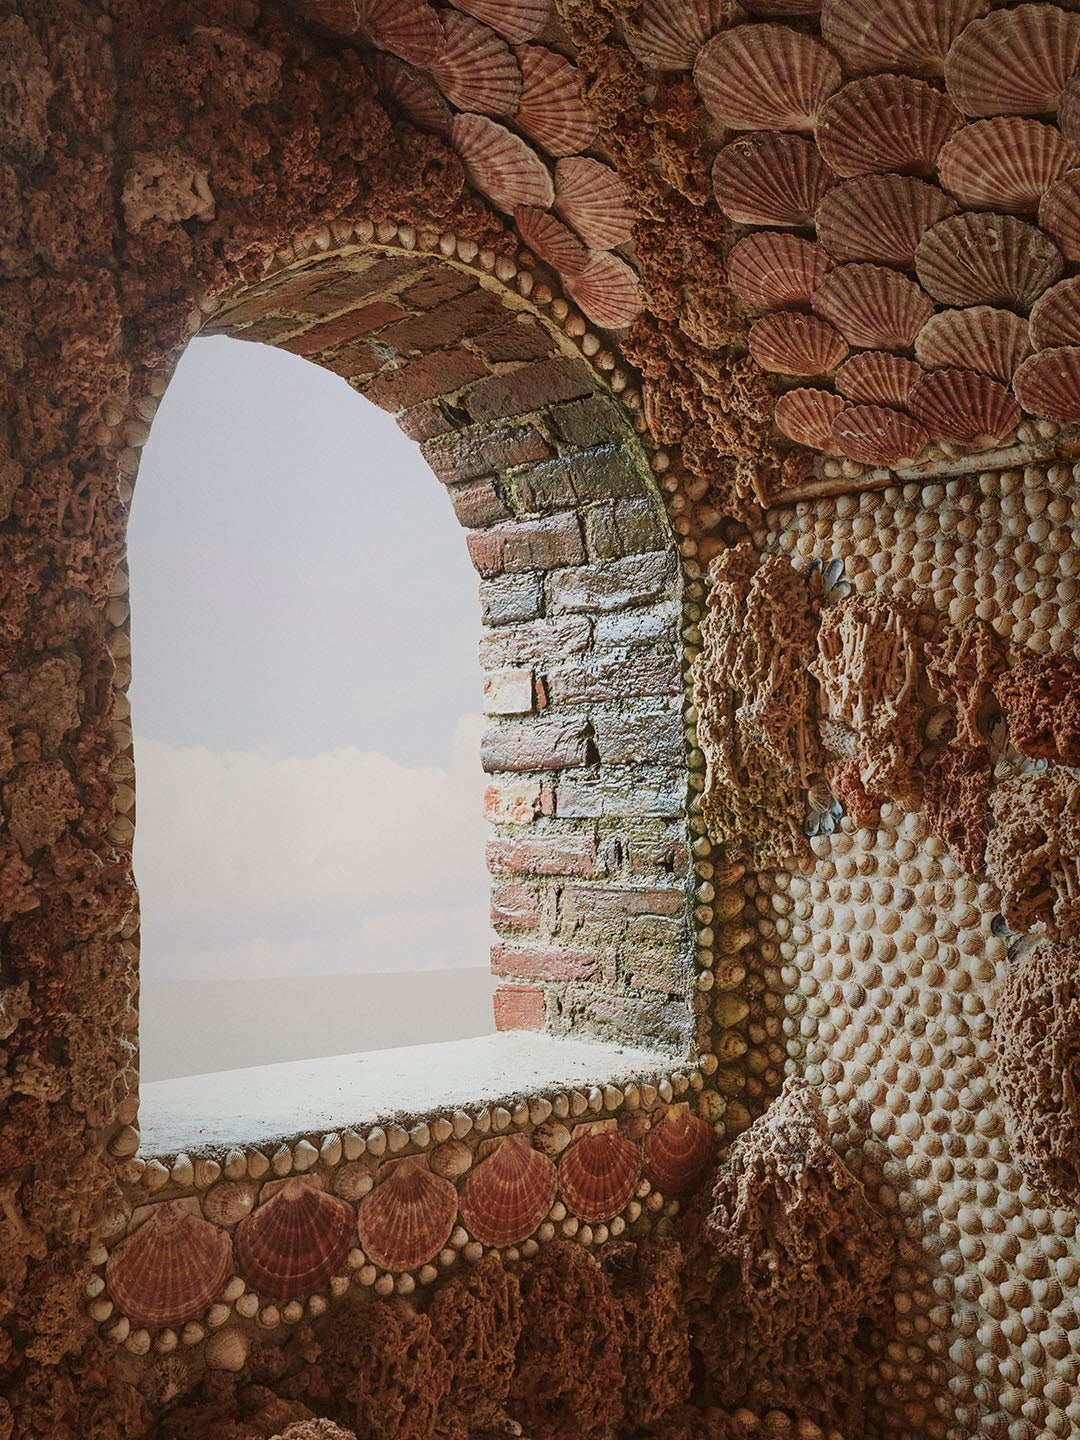 arched window with shellwork